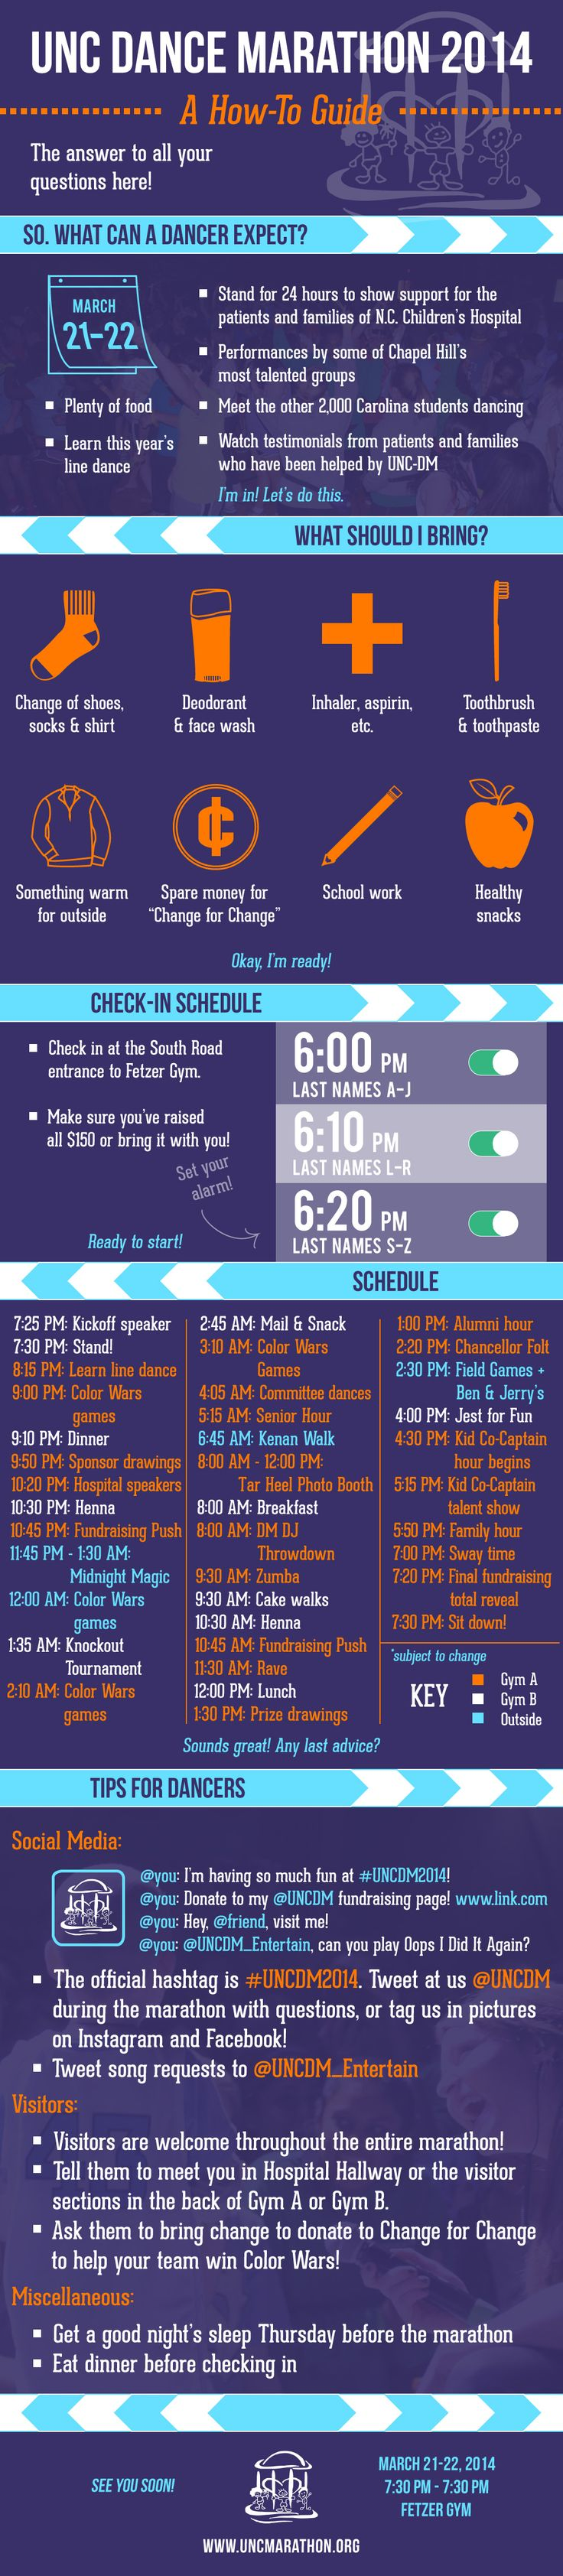 UNC Dance Marathon 2014: A How-To Guide [infographic]